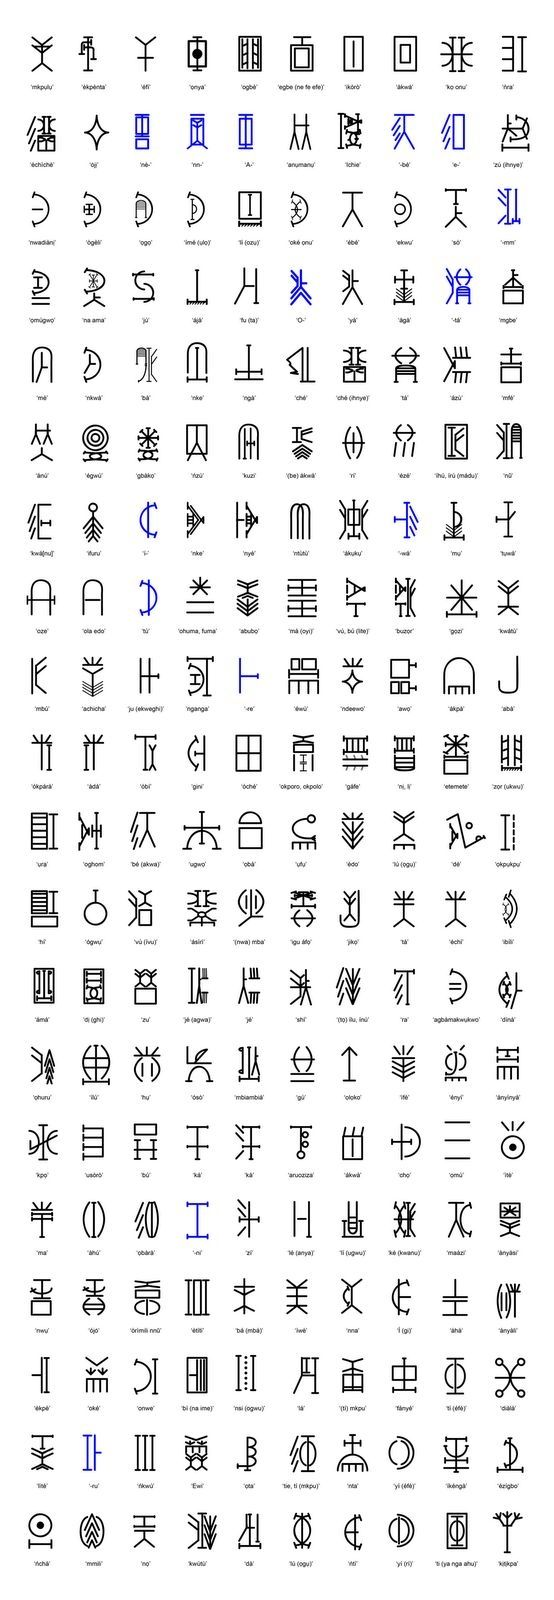 Symbols and their meanings egyptian symbols and their meanings symbols and their meanings egyptian symbols and their meanings nsibidi writing system by catalina more biocorpaavc Choice Image